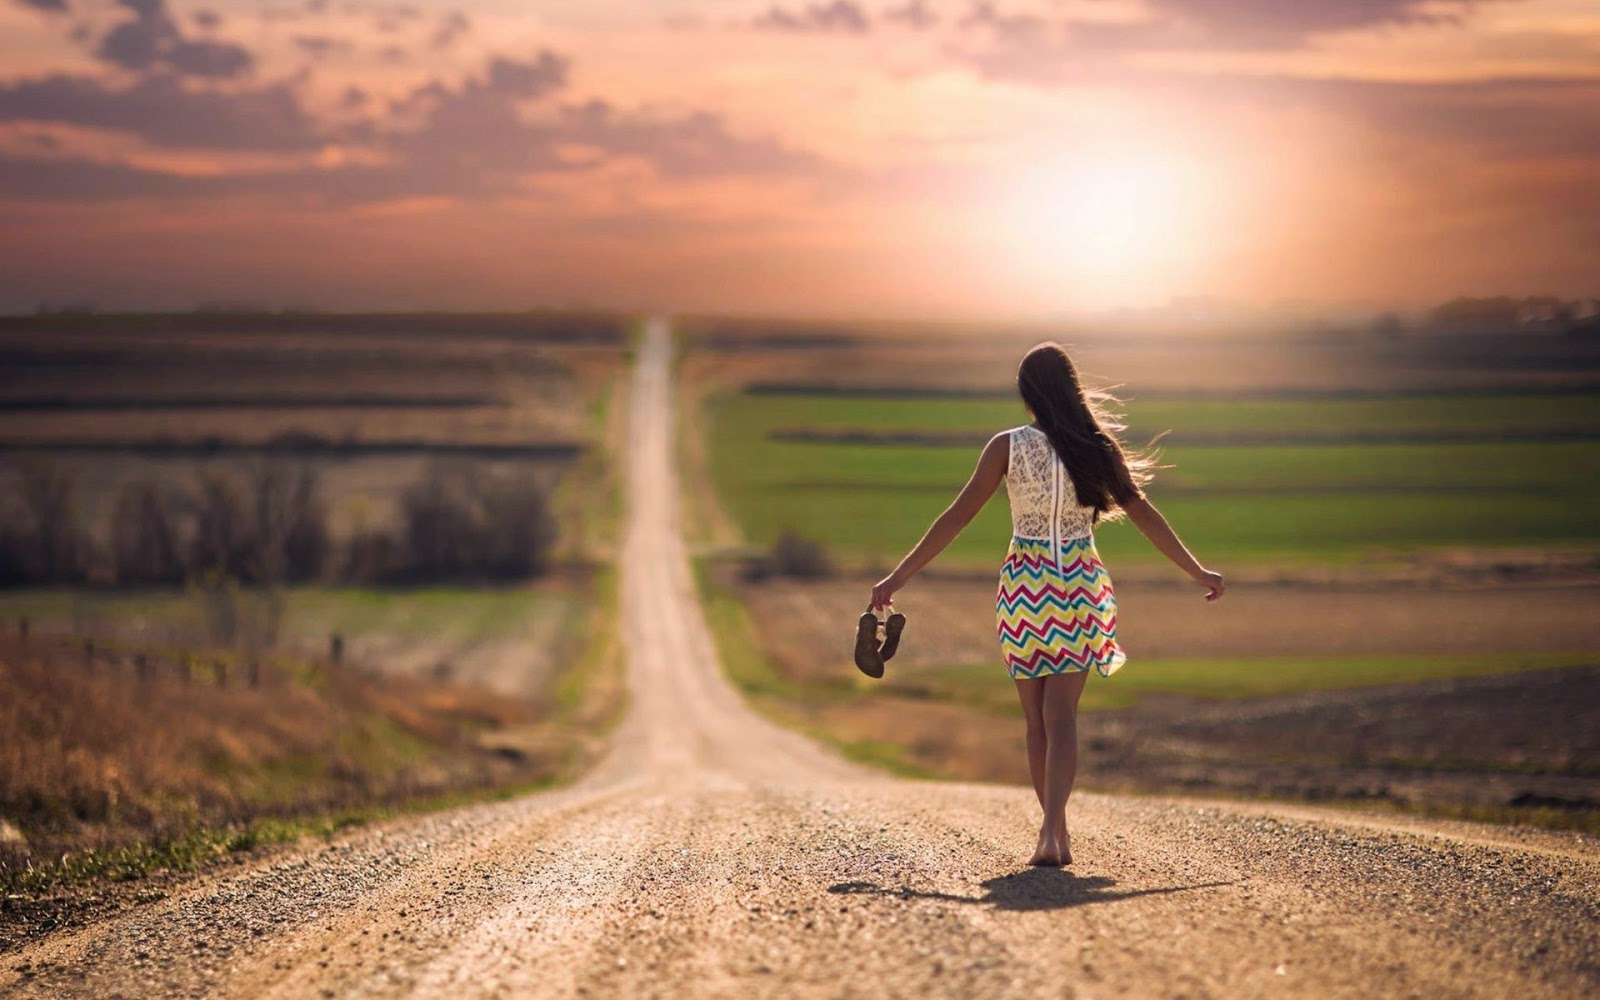 lonely_girl_walking_on_road_wallpaper.jpg